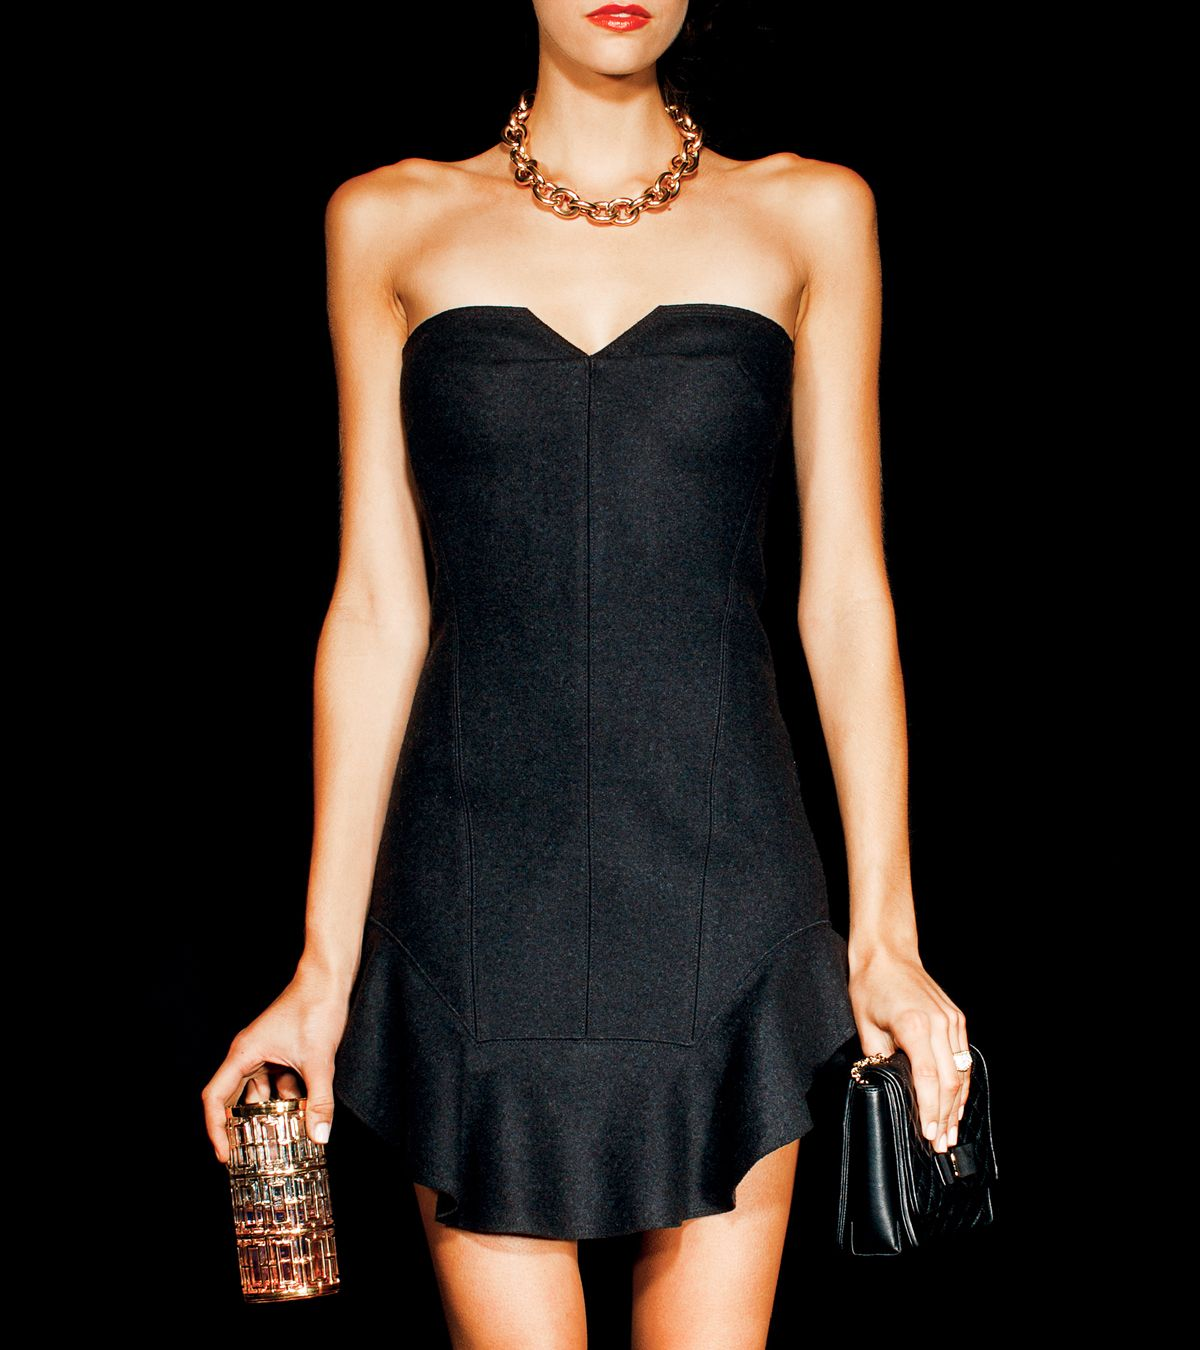 b1d0ab882ebf7 Noir and Piece  Little Black Dress + Jewelry   Holiday Party Look ...